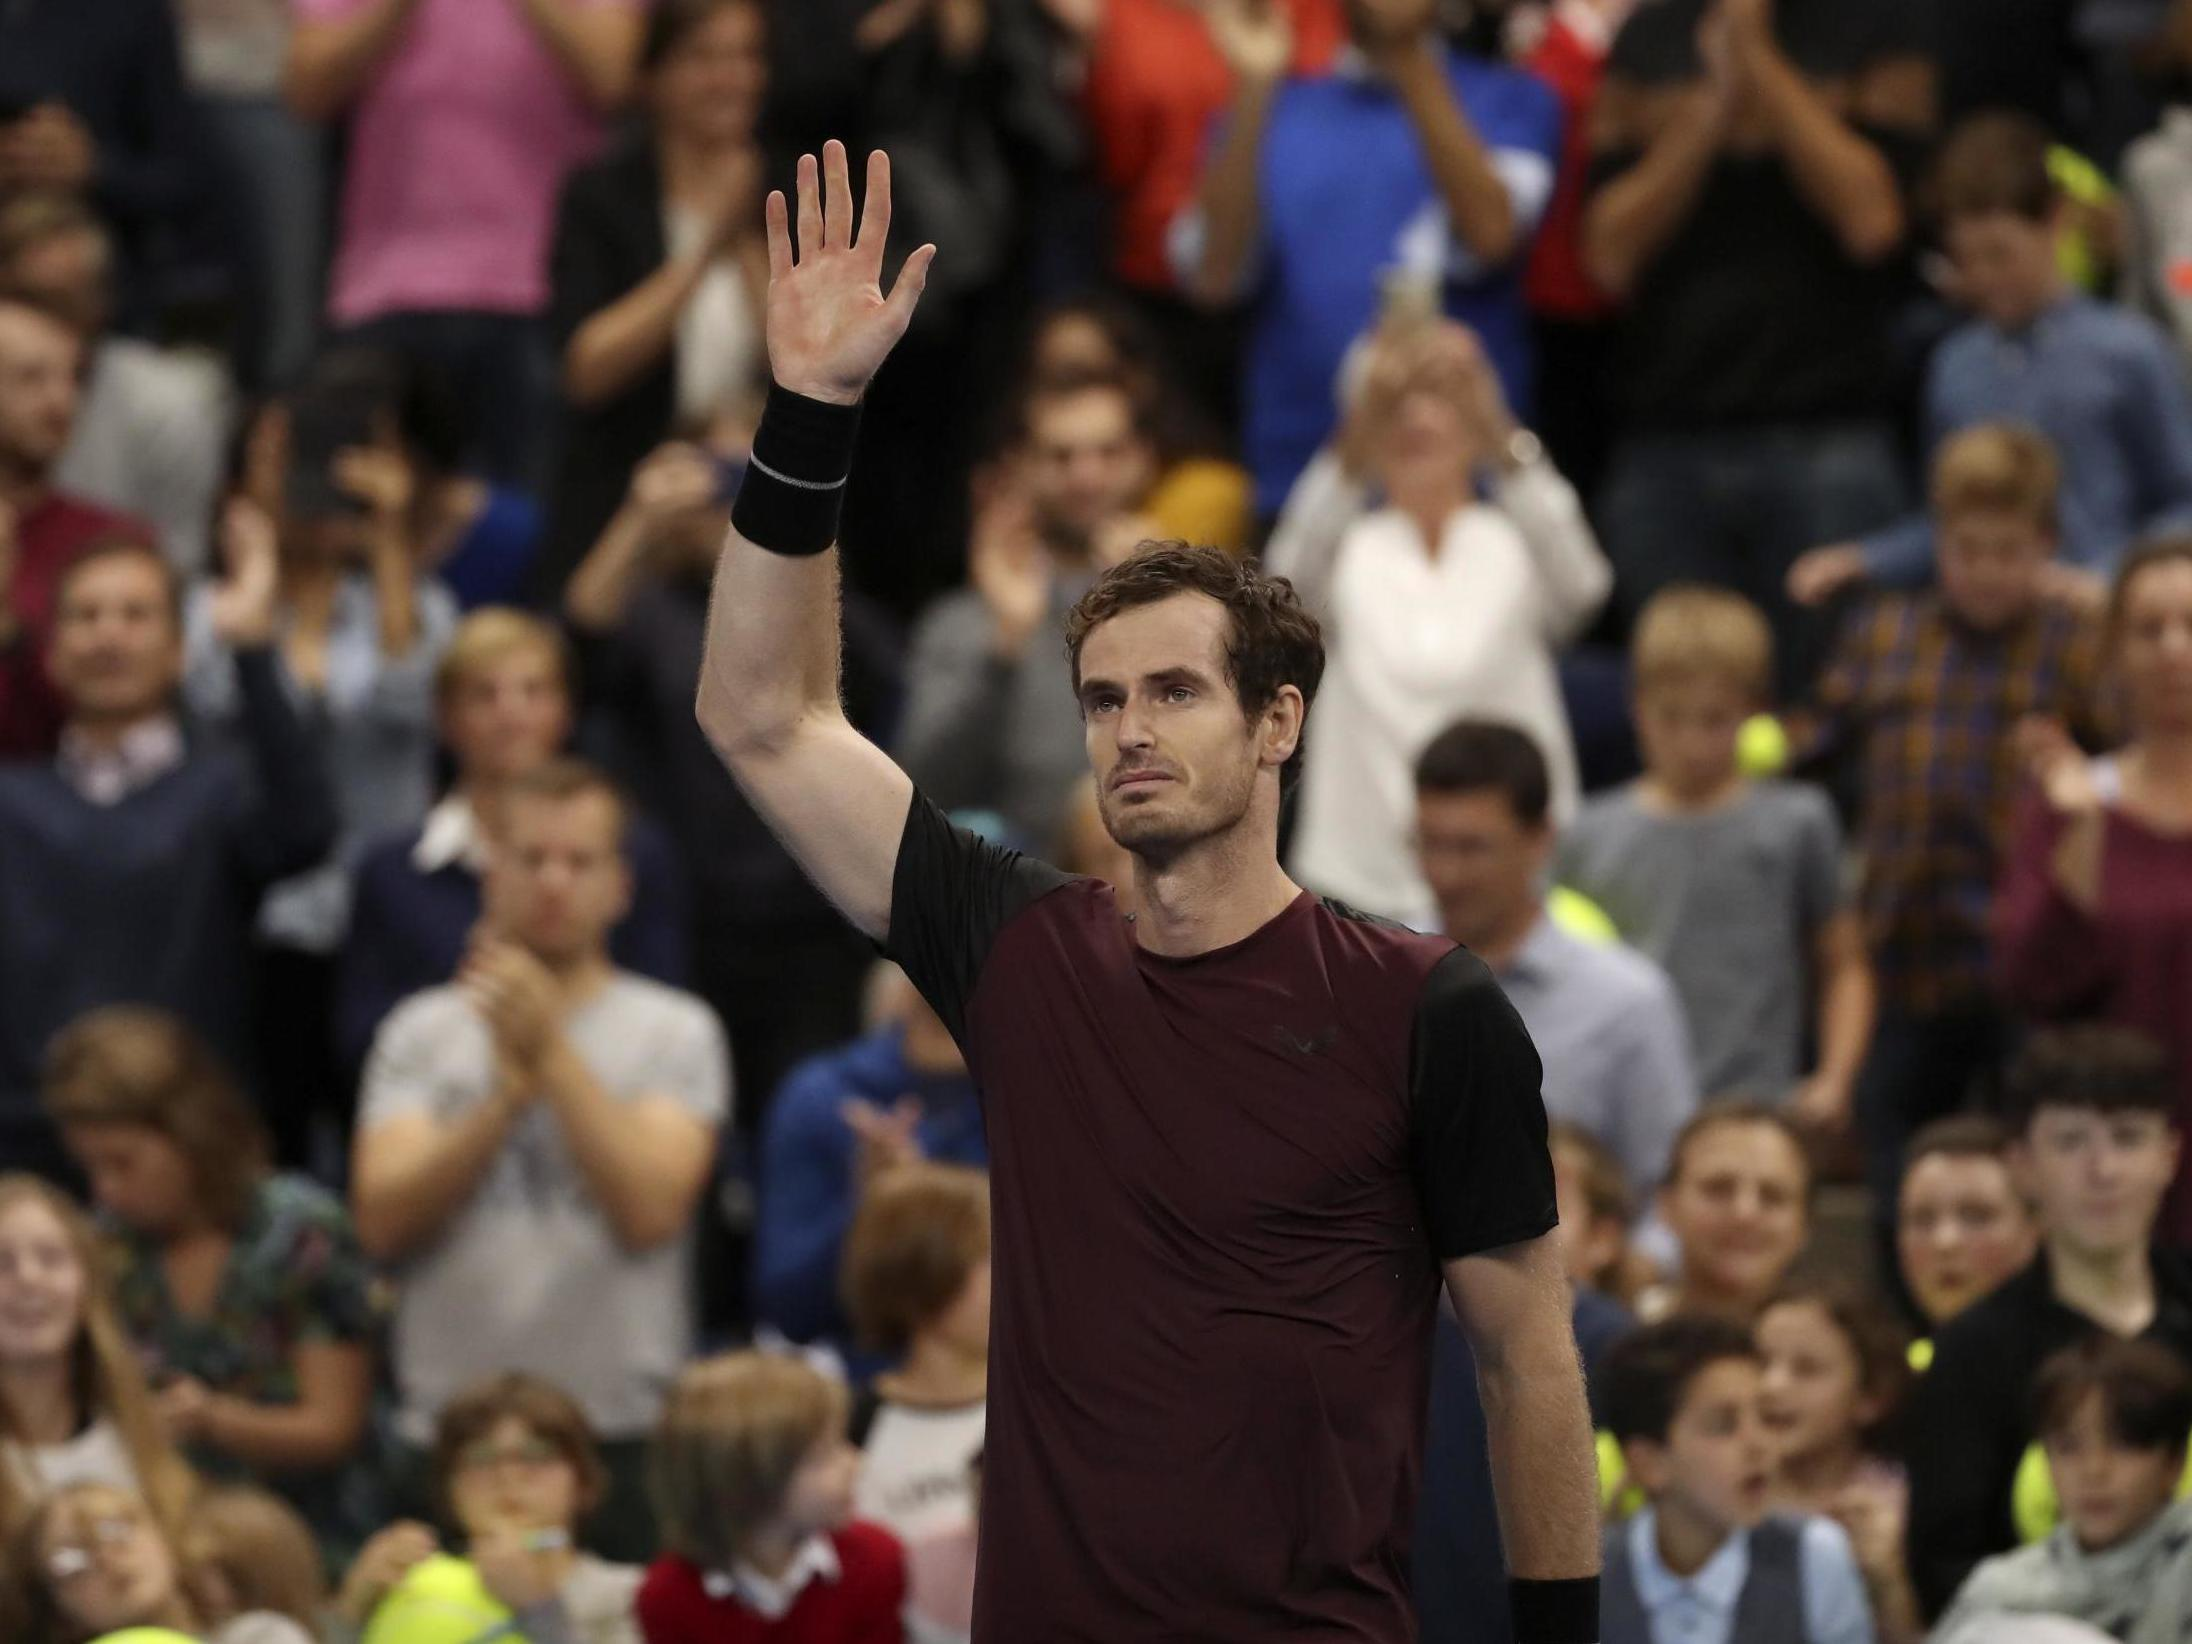 Andy Murray continues to defy everyone's expectations but his own